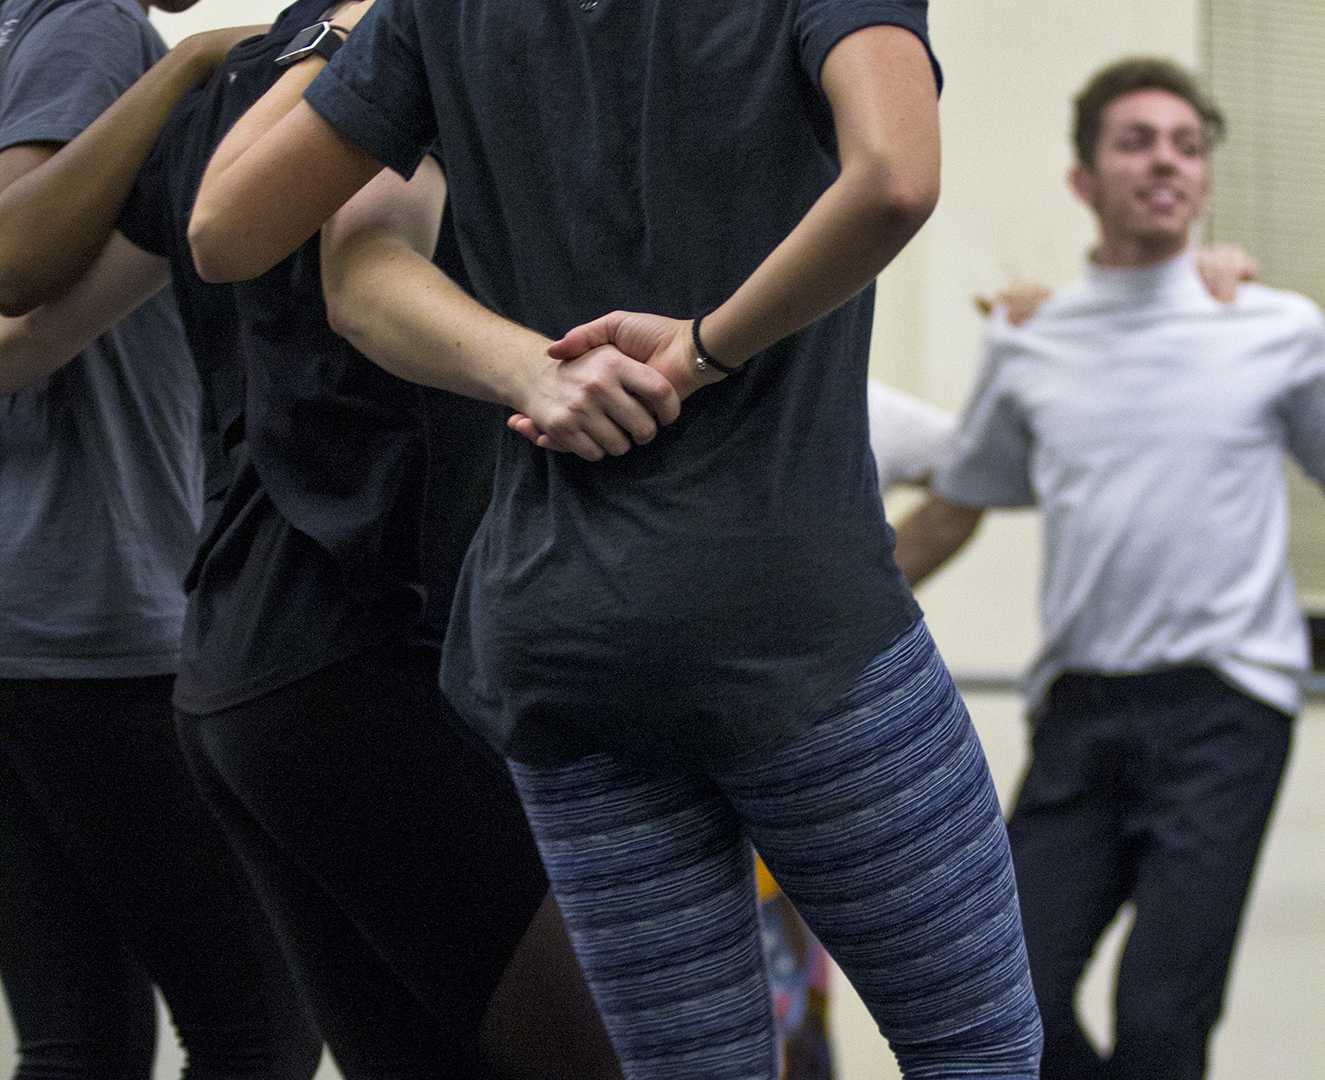 Trevor Edwards, a senior WKU dance major (right) dances in sync to a traditional Bosnian dance for the International year of Bosnia and Herzegovina class put on by the National Dance Education Organization WKU Student Chapter.